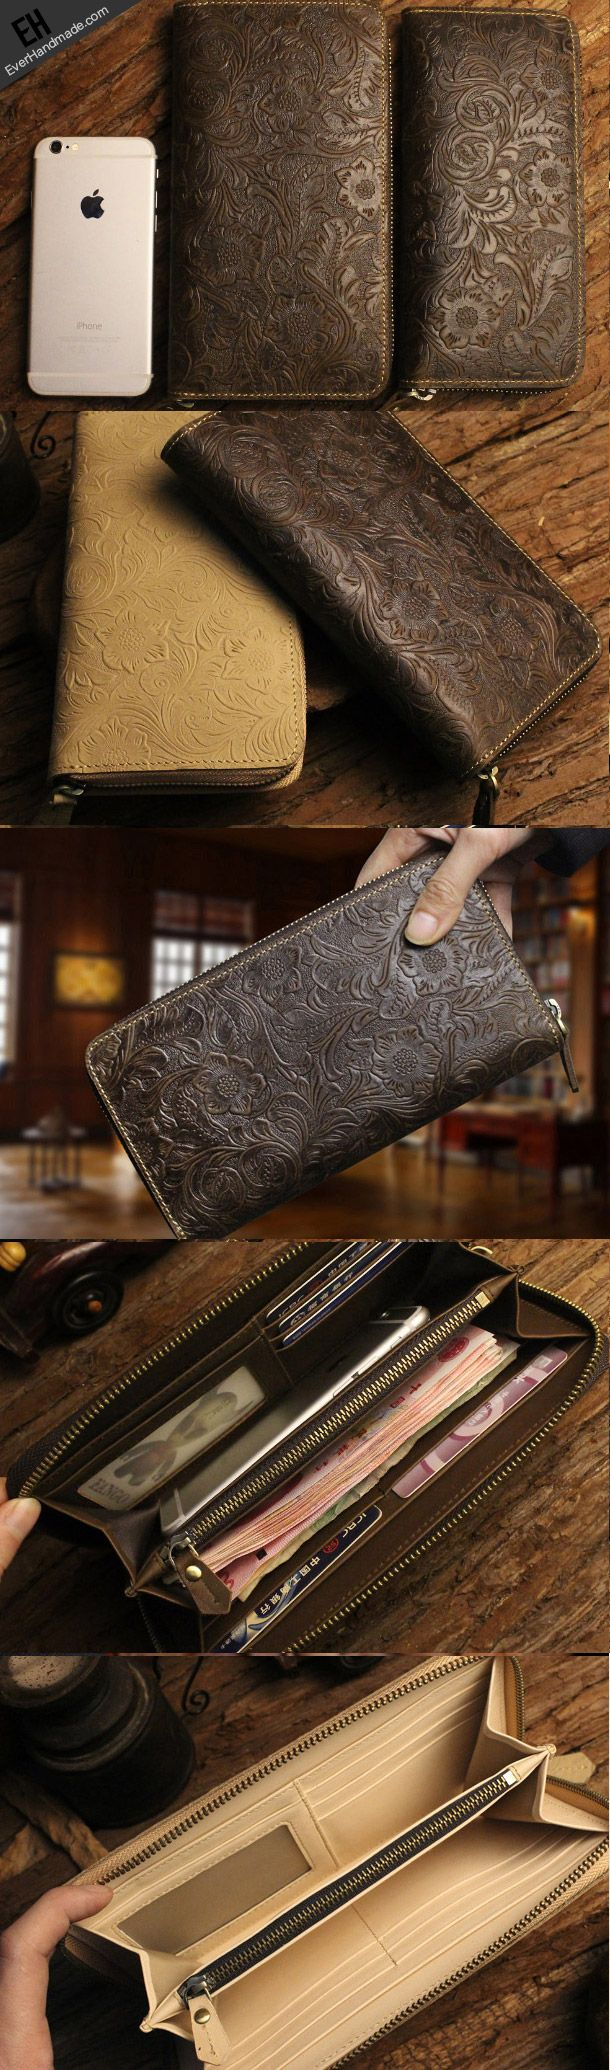 Handmade long leather wallet floral leather clutch wallet for women men